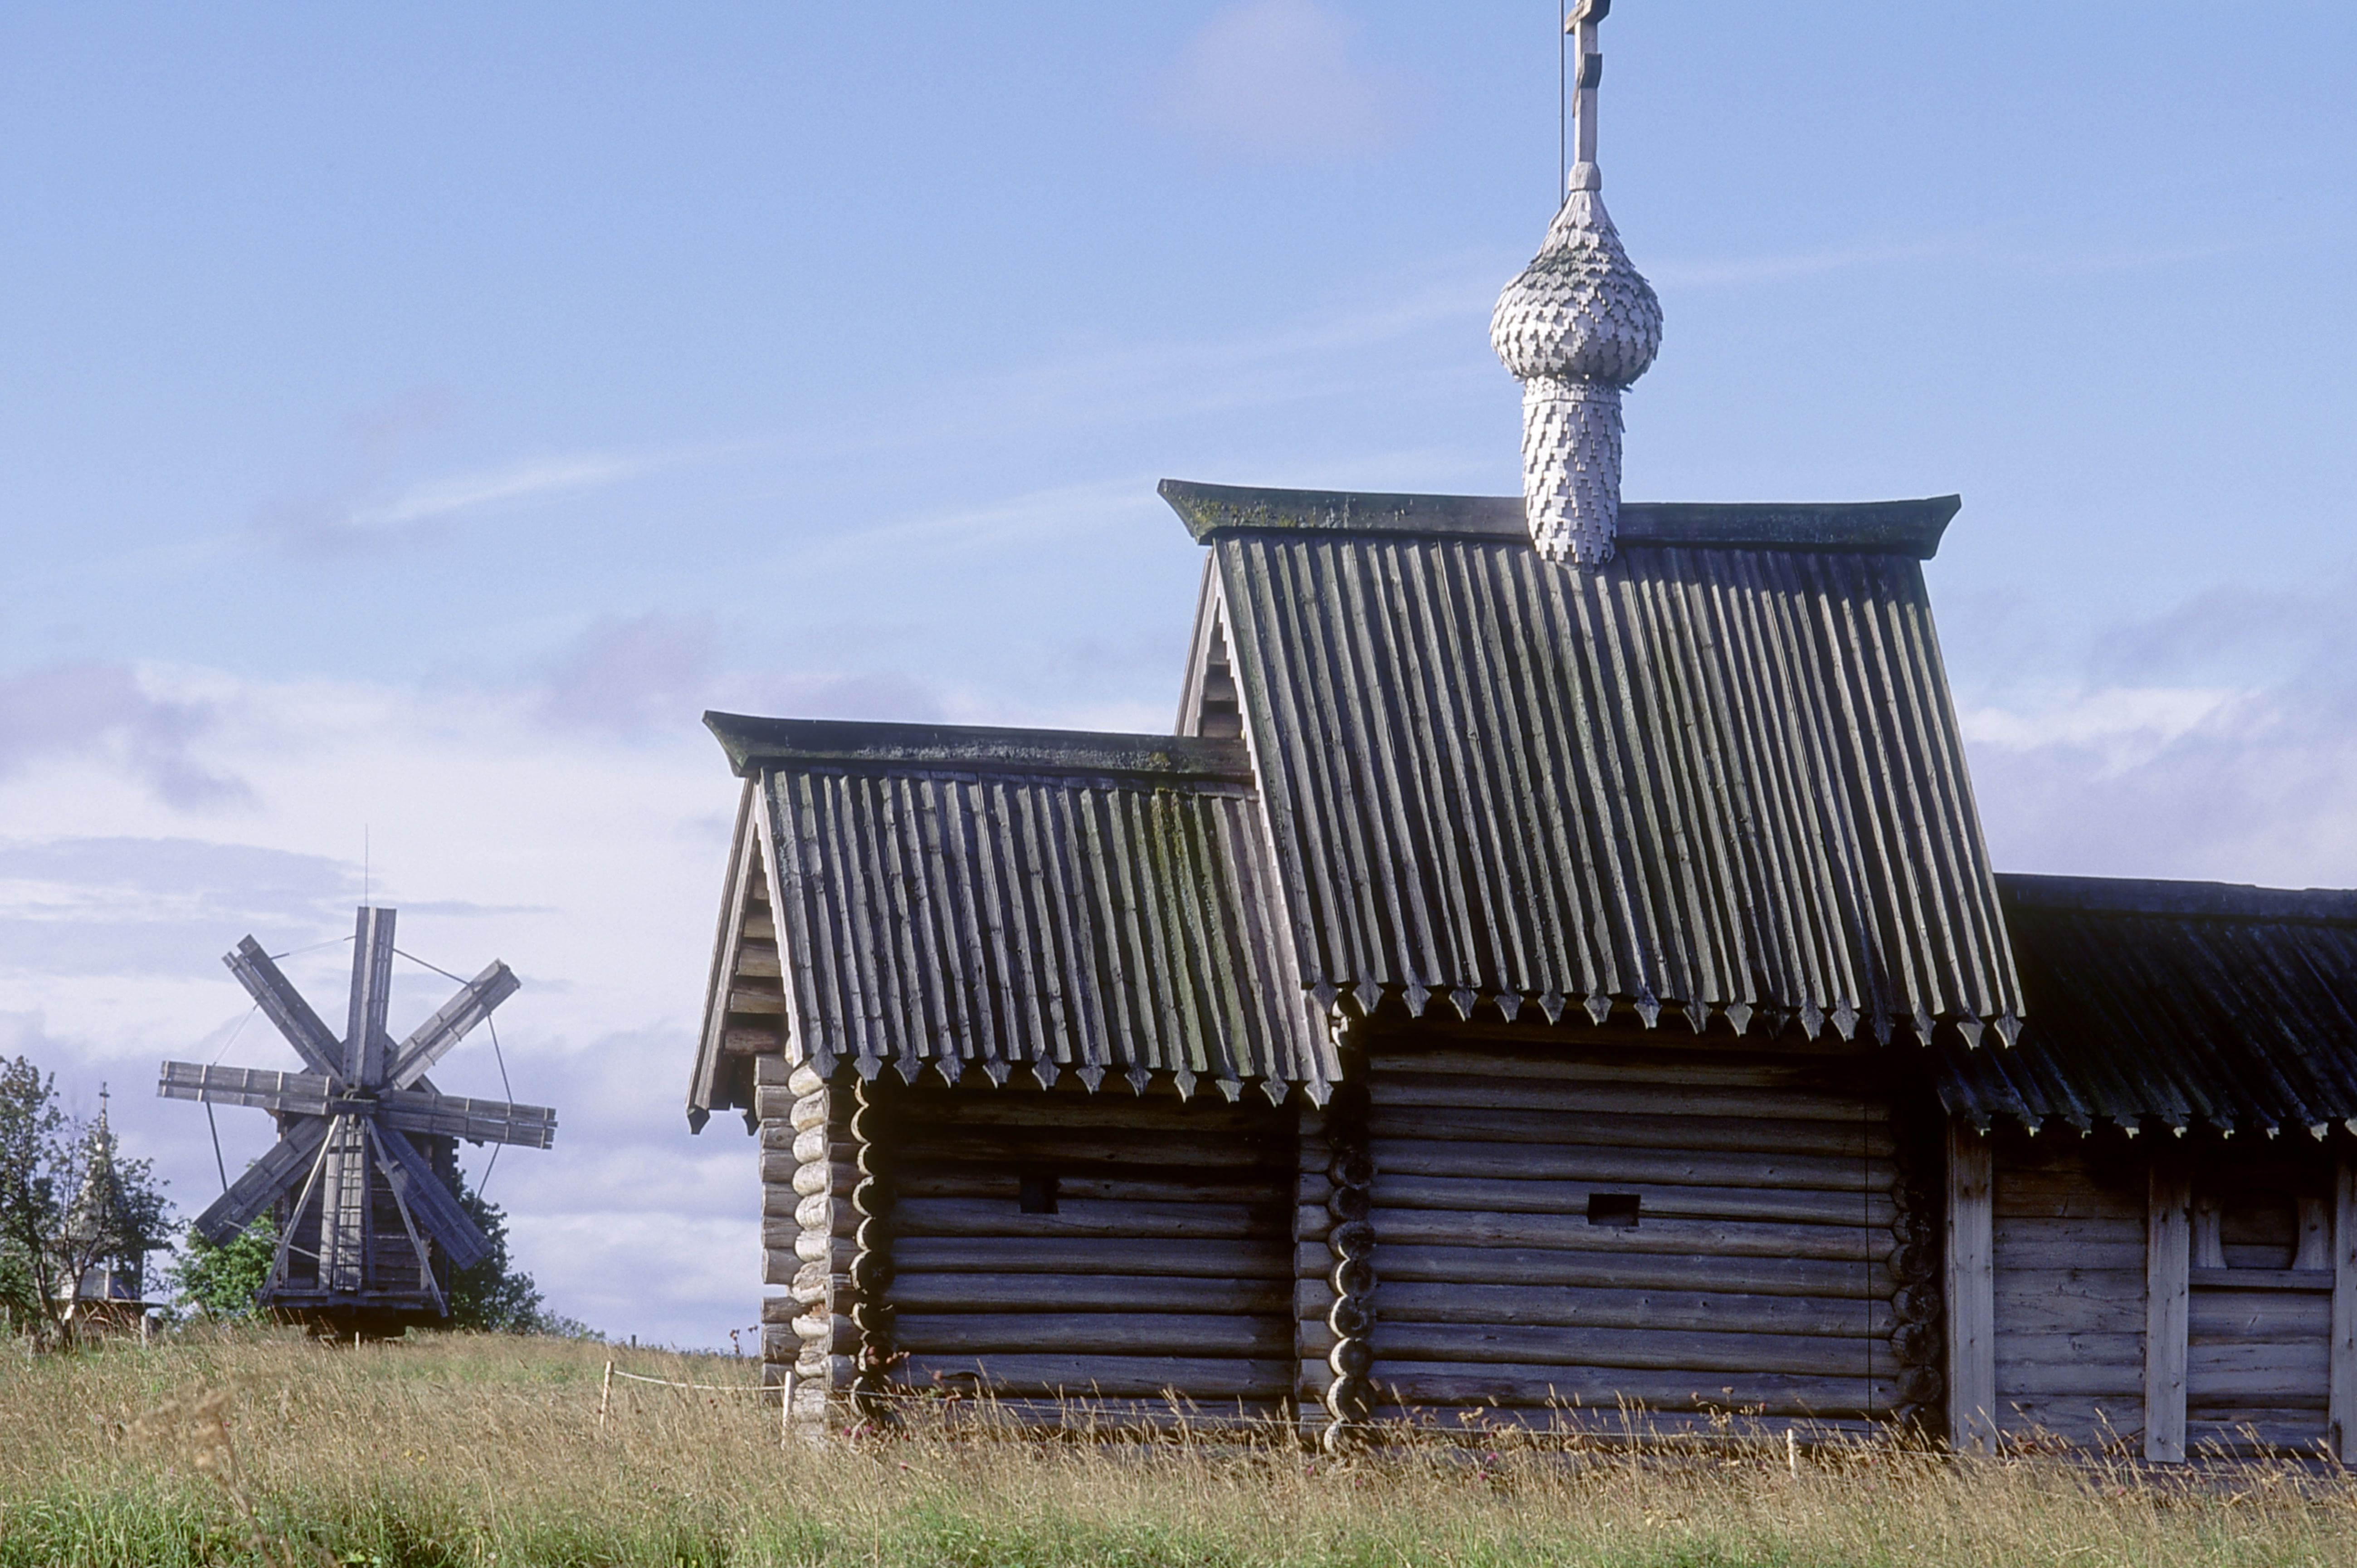 Simple wooden church may be oldest in Russia, with windmill on Kizhi Island